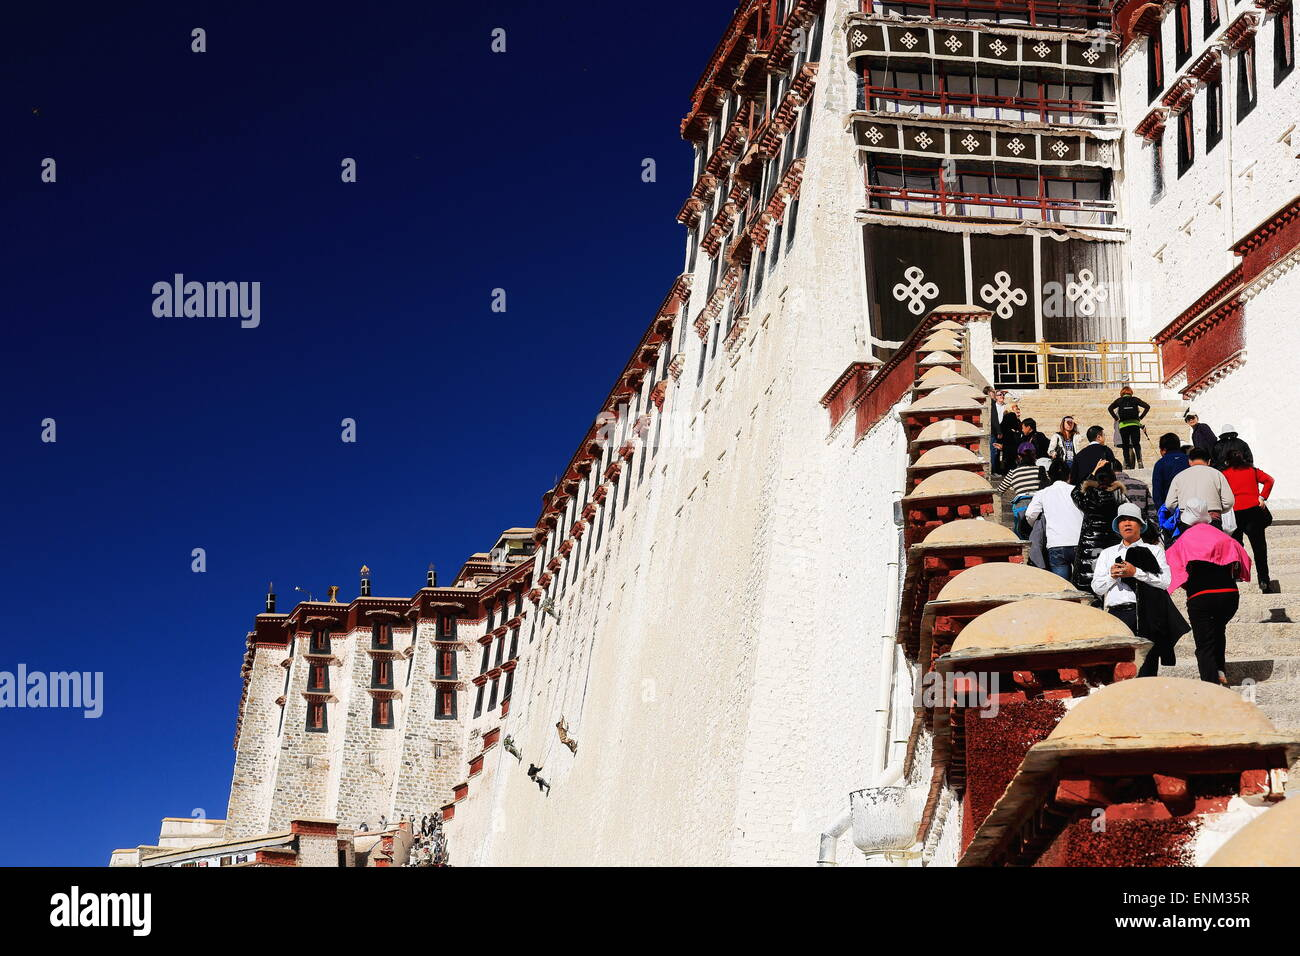 LHASA, TIBET, CHINA - OCTOBER 20: Locals and tourists climb the stairs leading to the inner Potala palace to visit - Stock Image